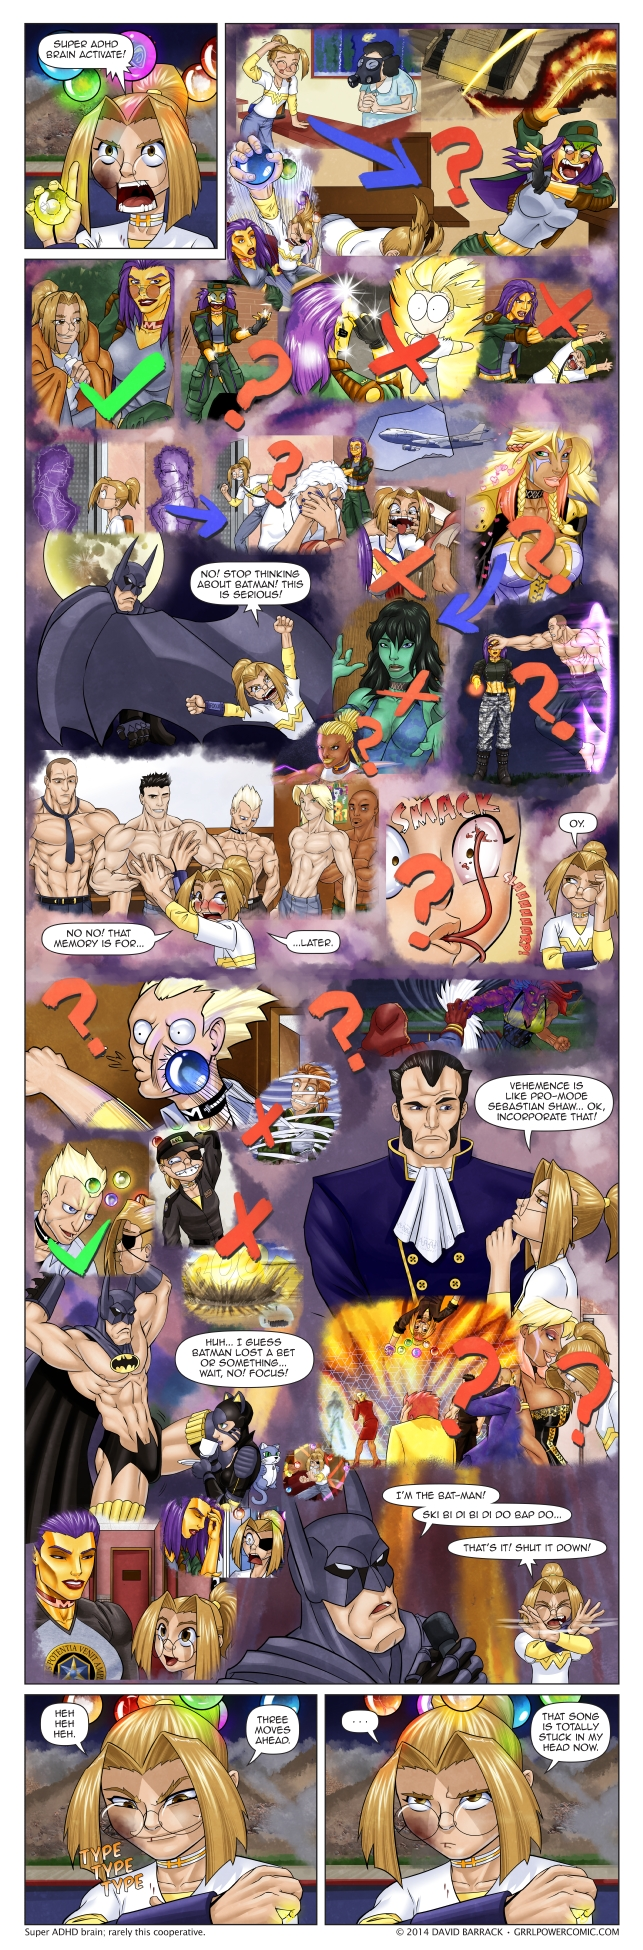 Grrl Power #278 – Alarmingly Disorderly Harnessing of Doom